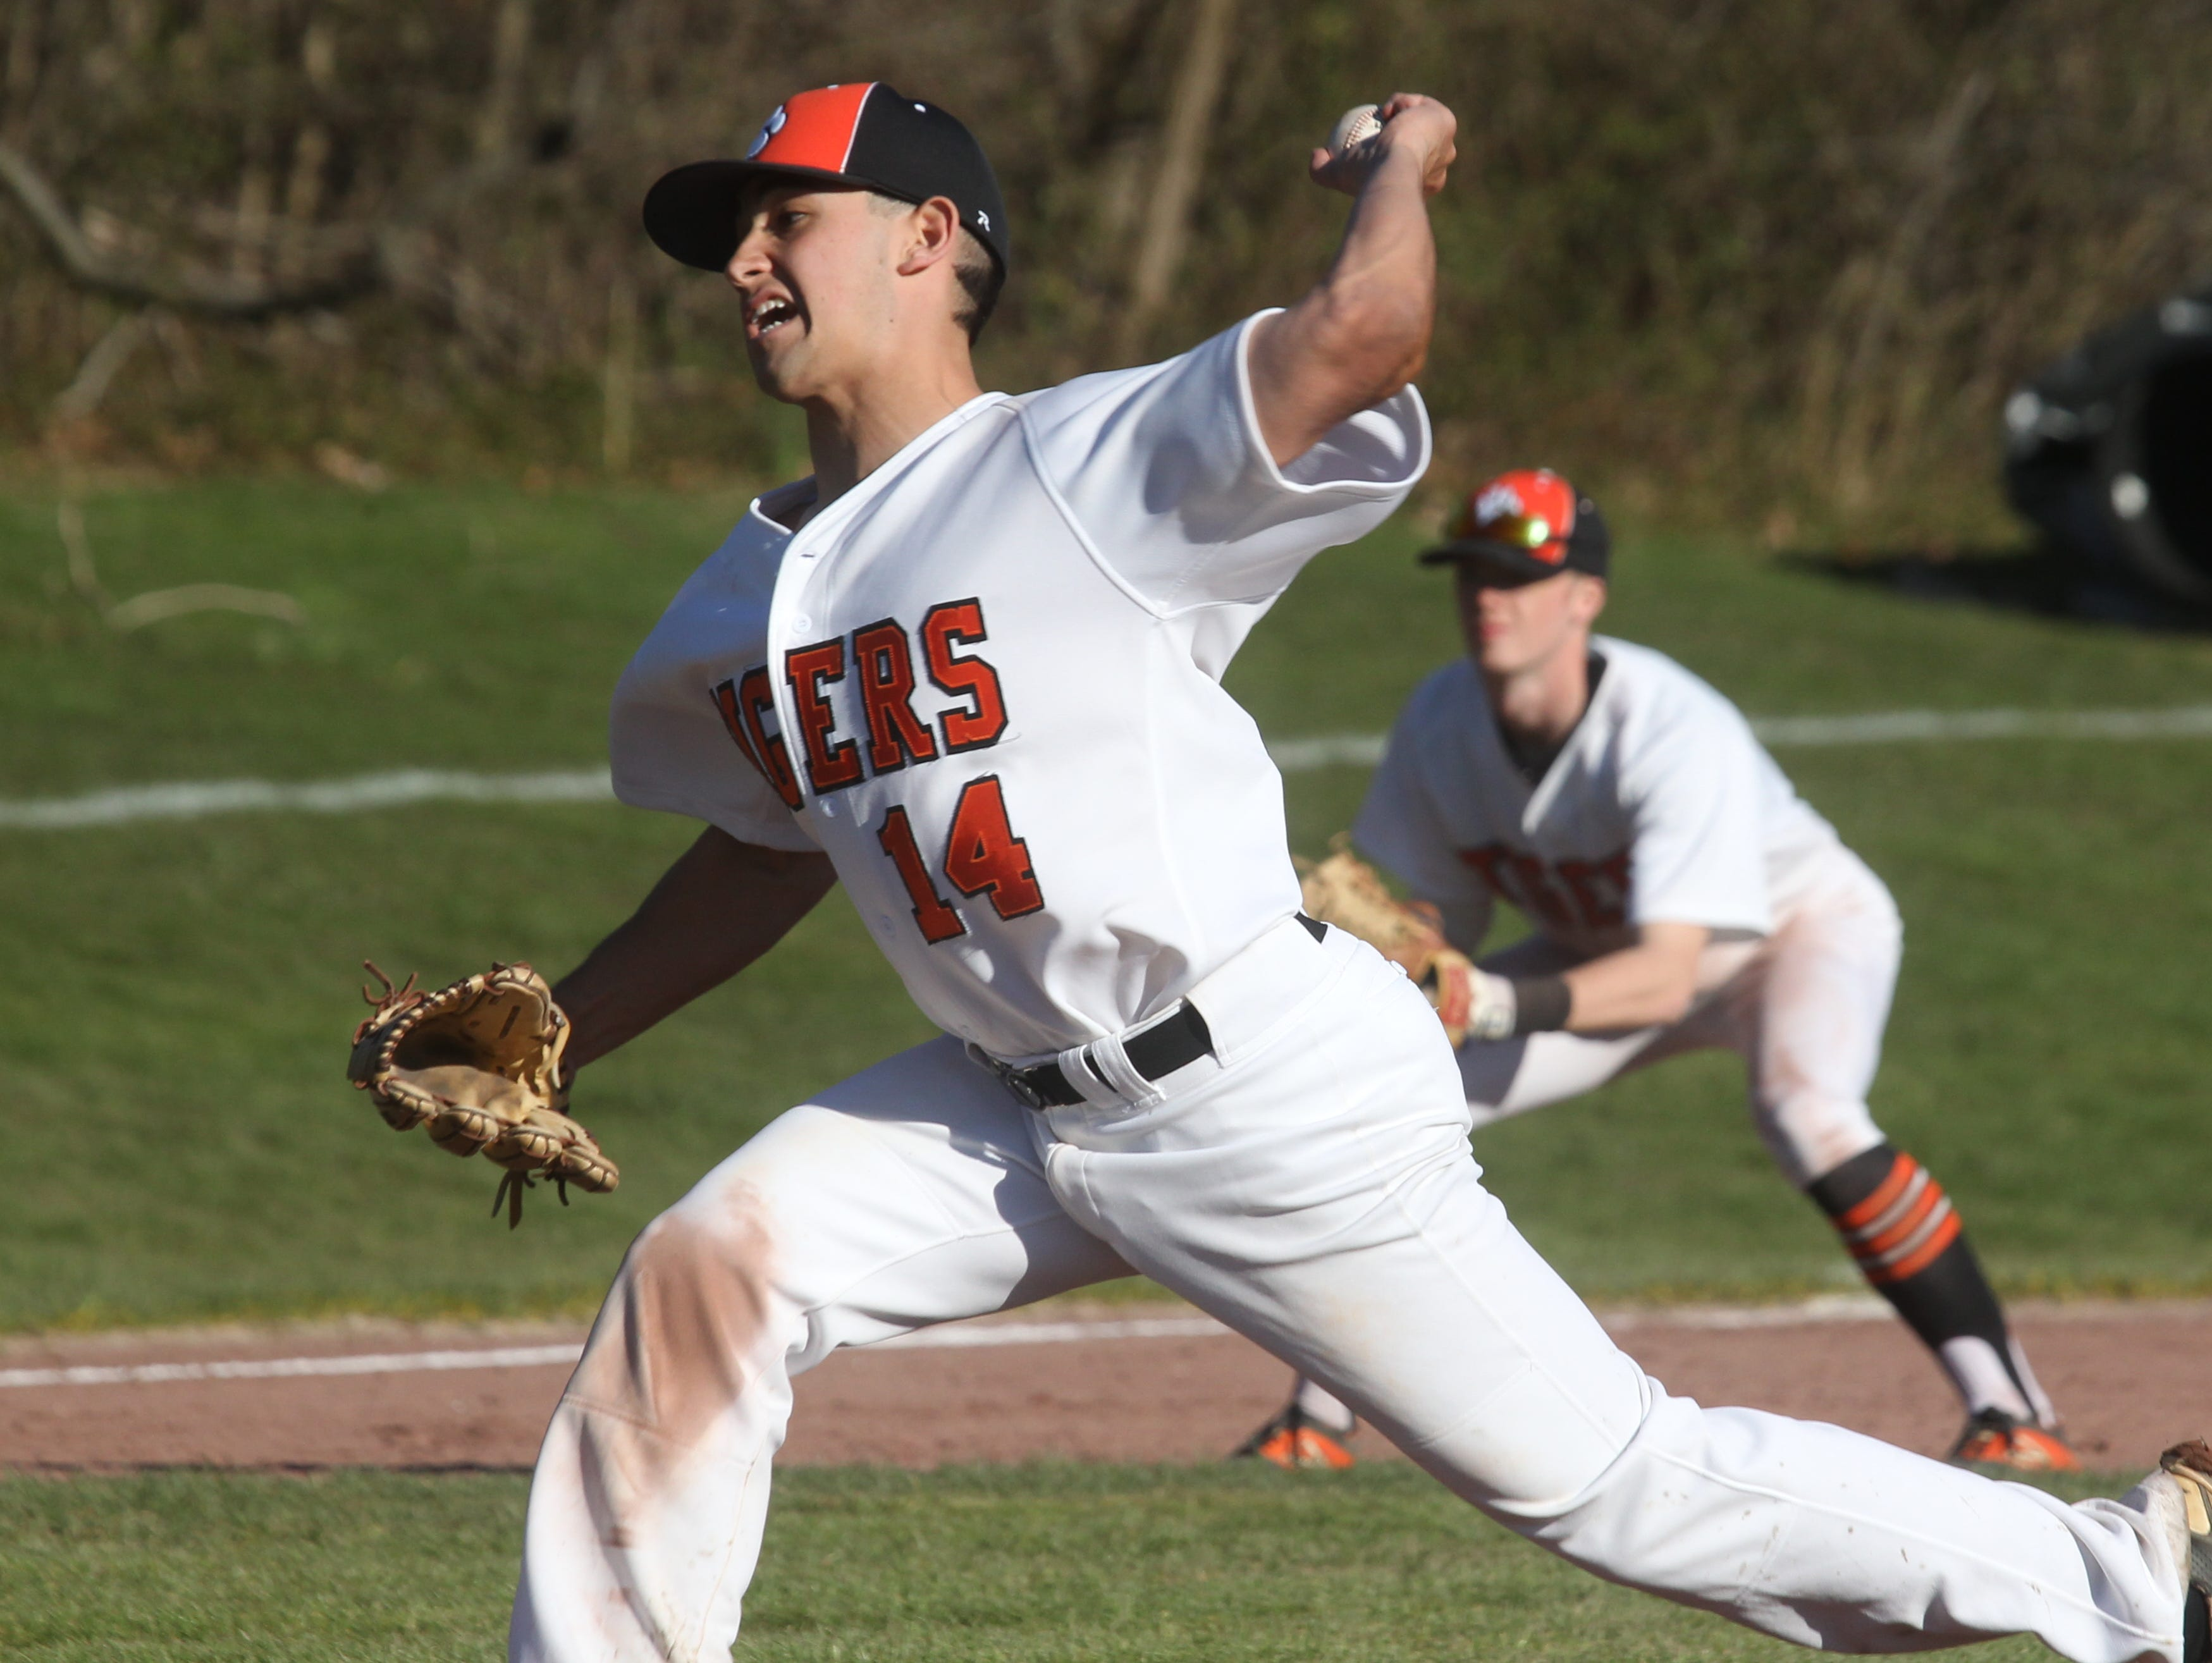 White Plains' Danny Lotito delivers a pitch during a game with Scarsdale at White Plains April 12, 2016. White Plains won 7-0.